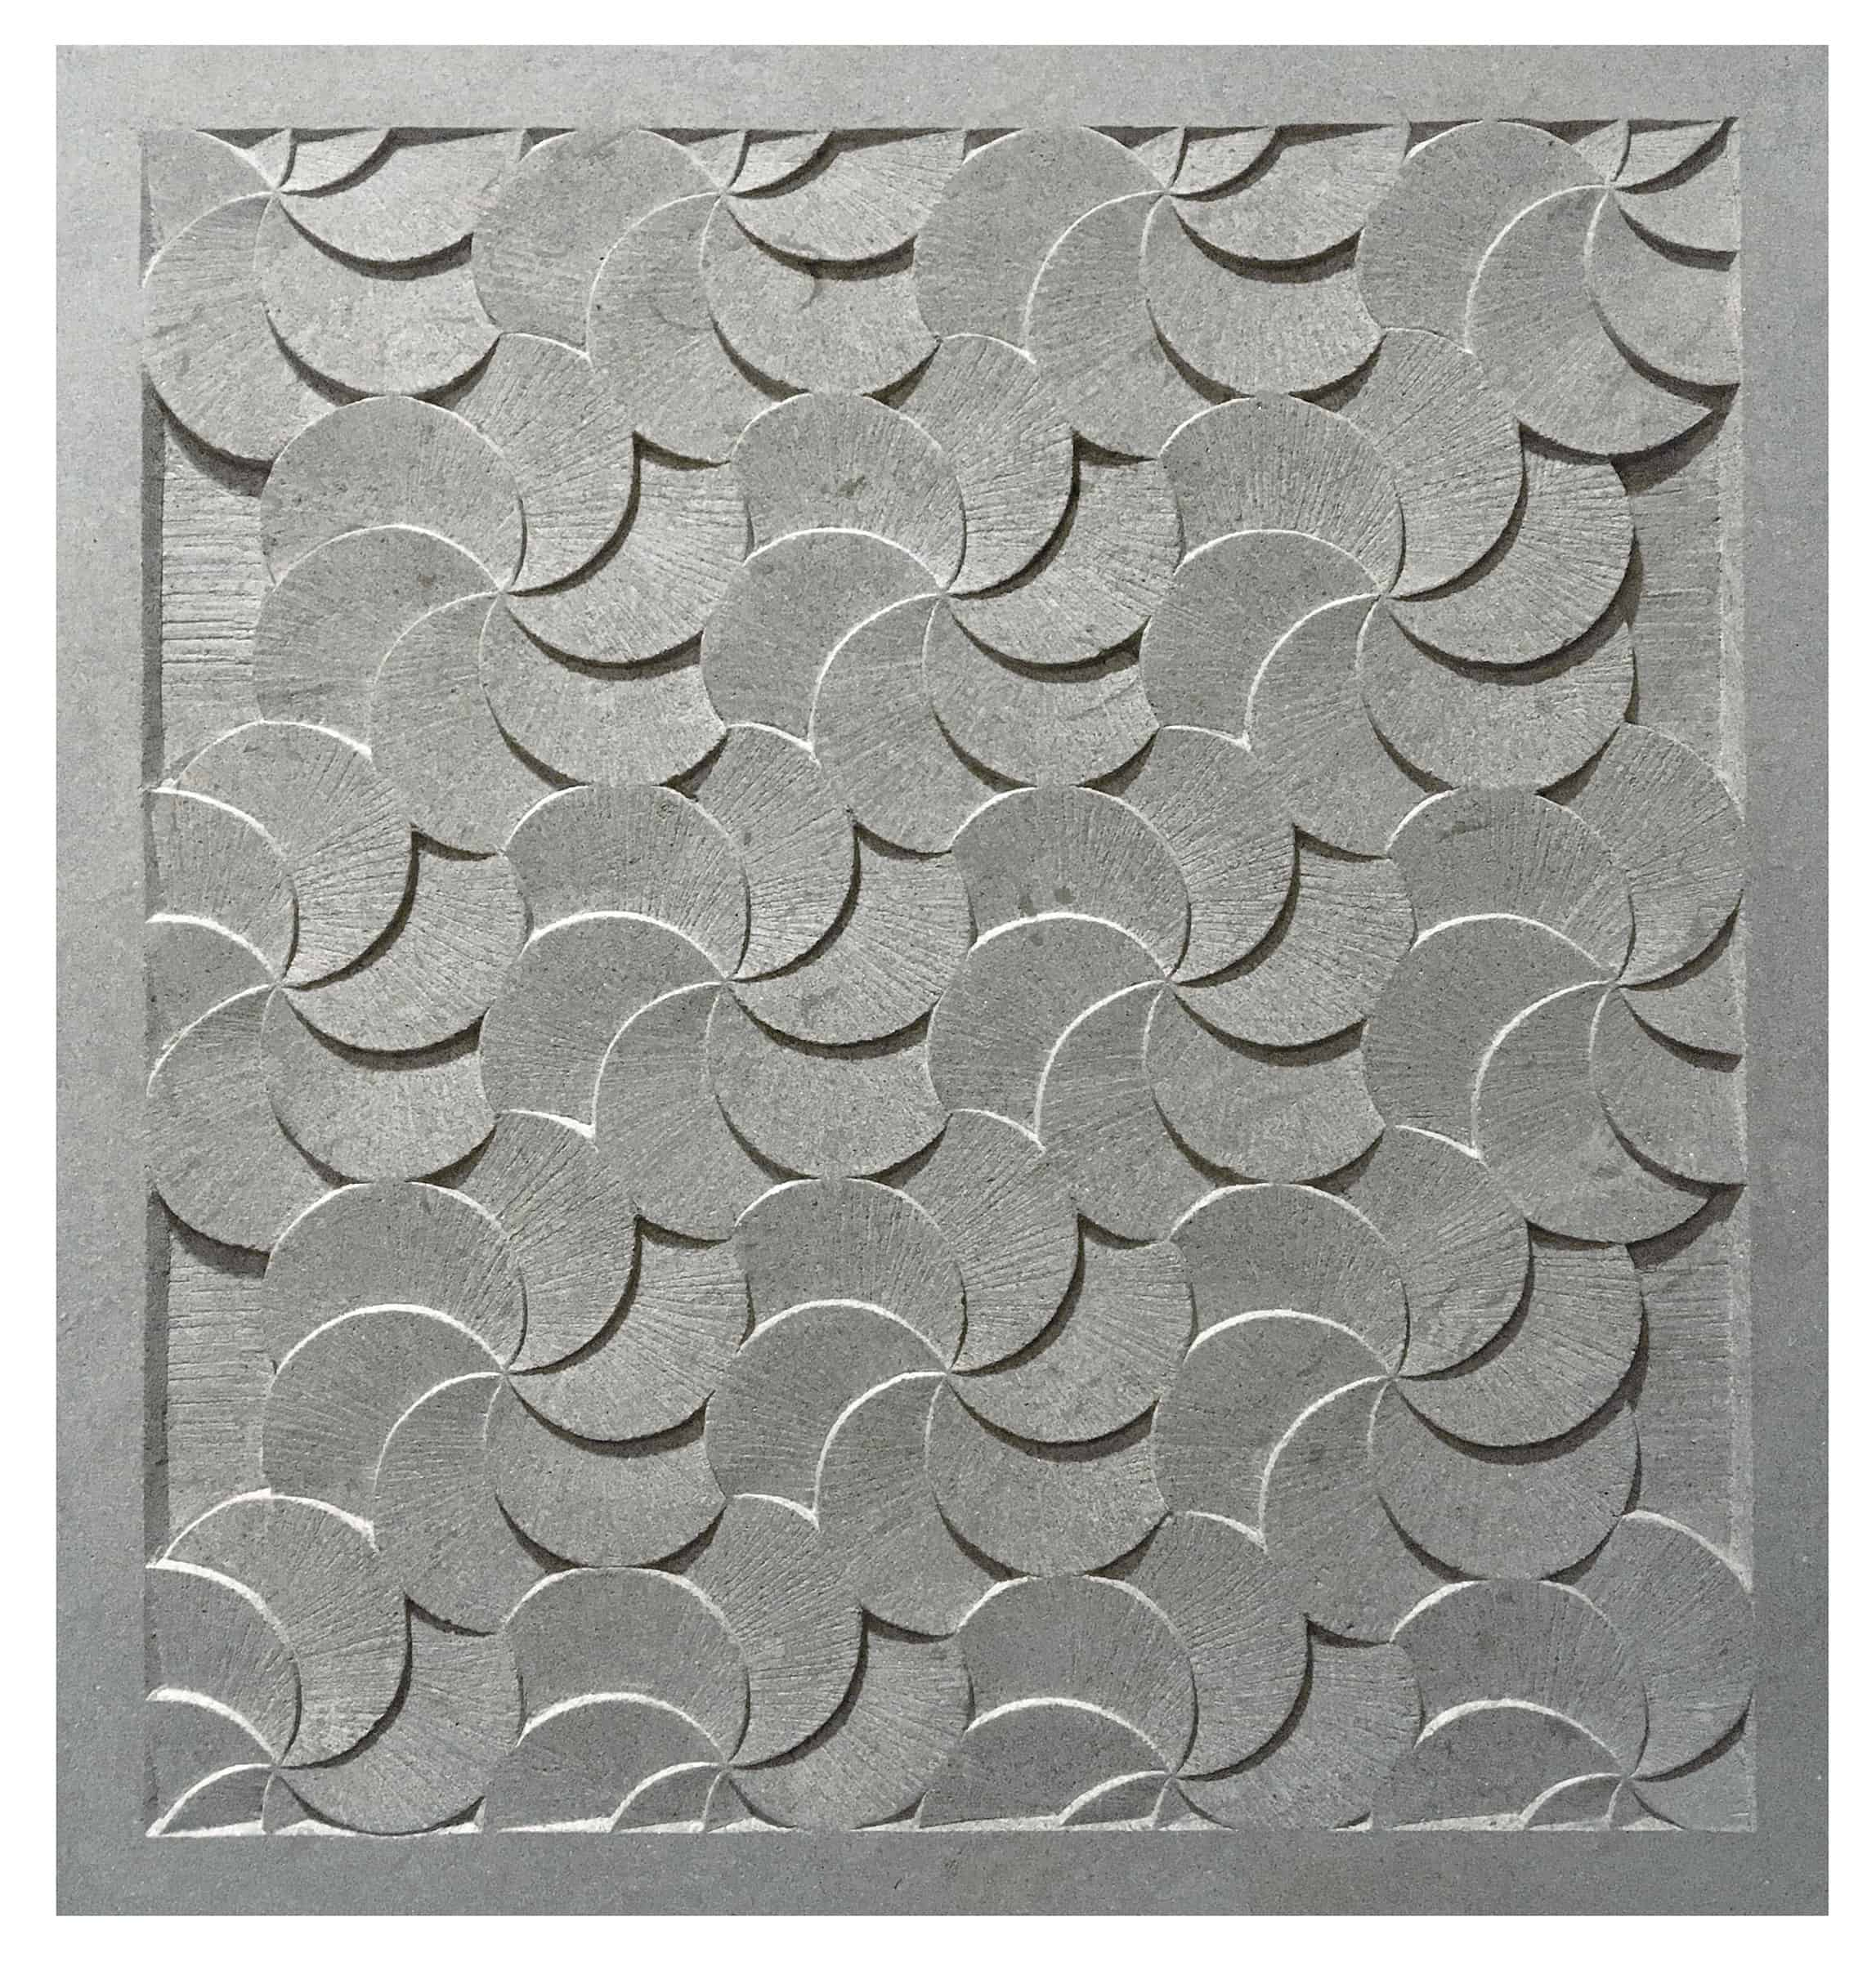 geometric pattern in shallow relief, carved in stone